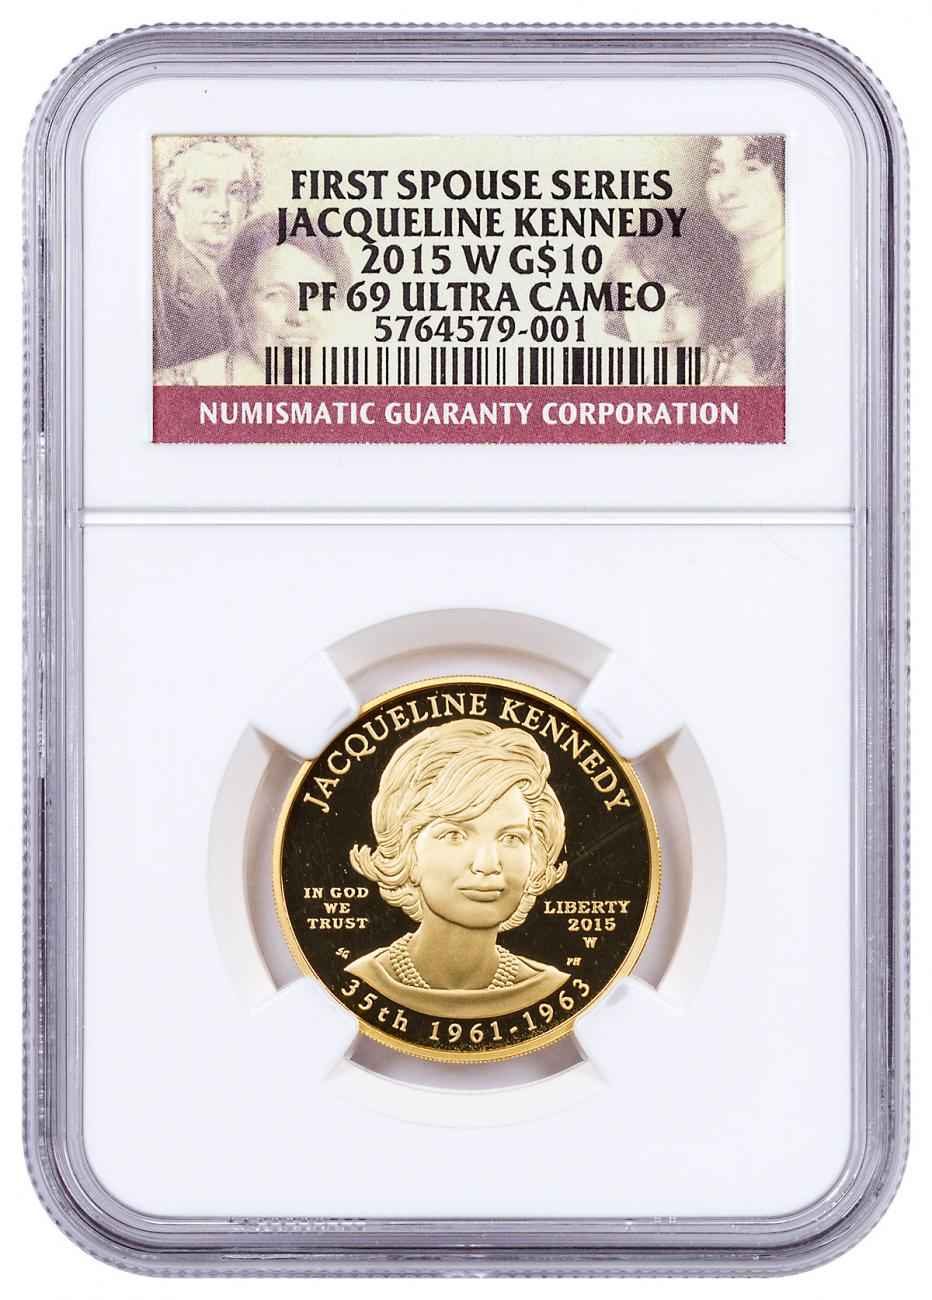 2015-W Jacqueline Kennedy First Spouse Gold Proof $10 NGC PF69 UC